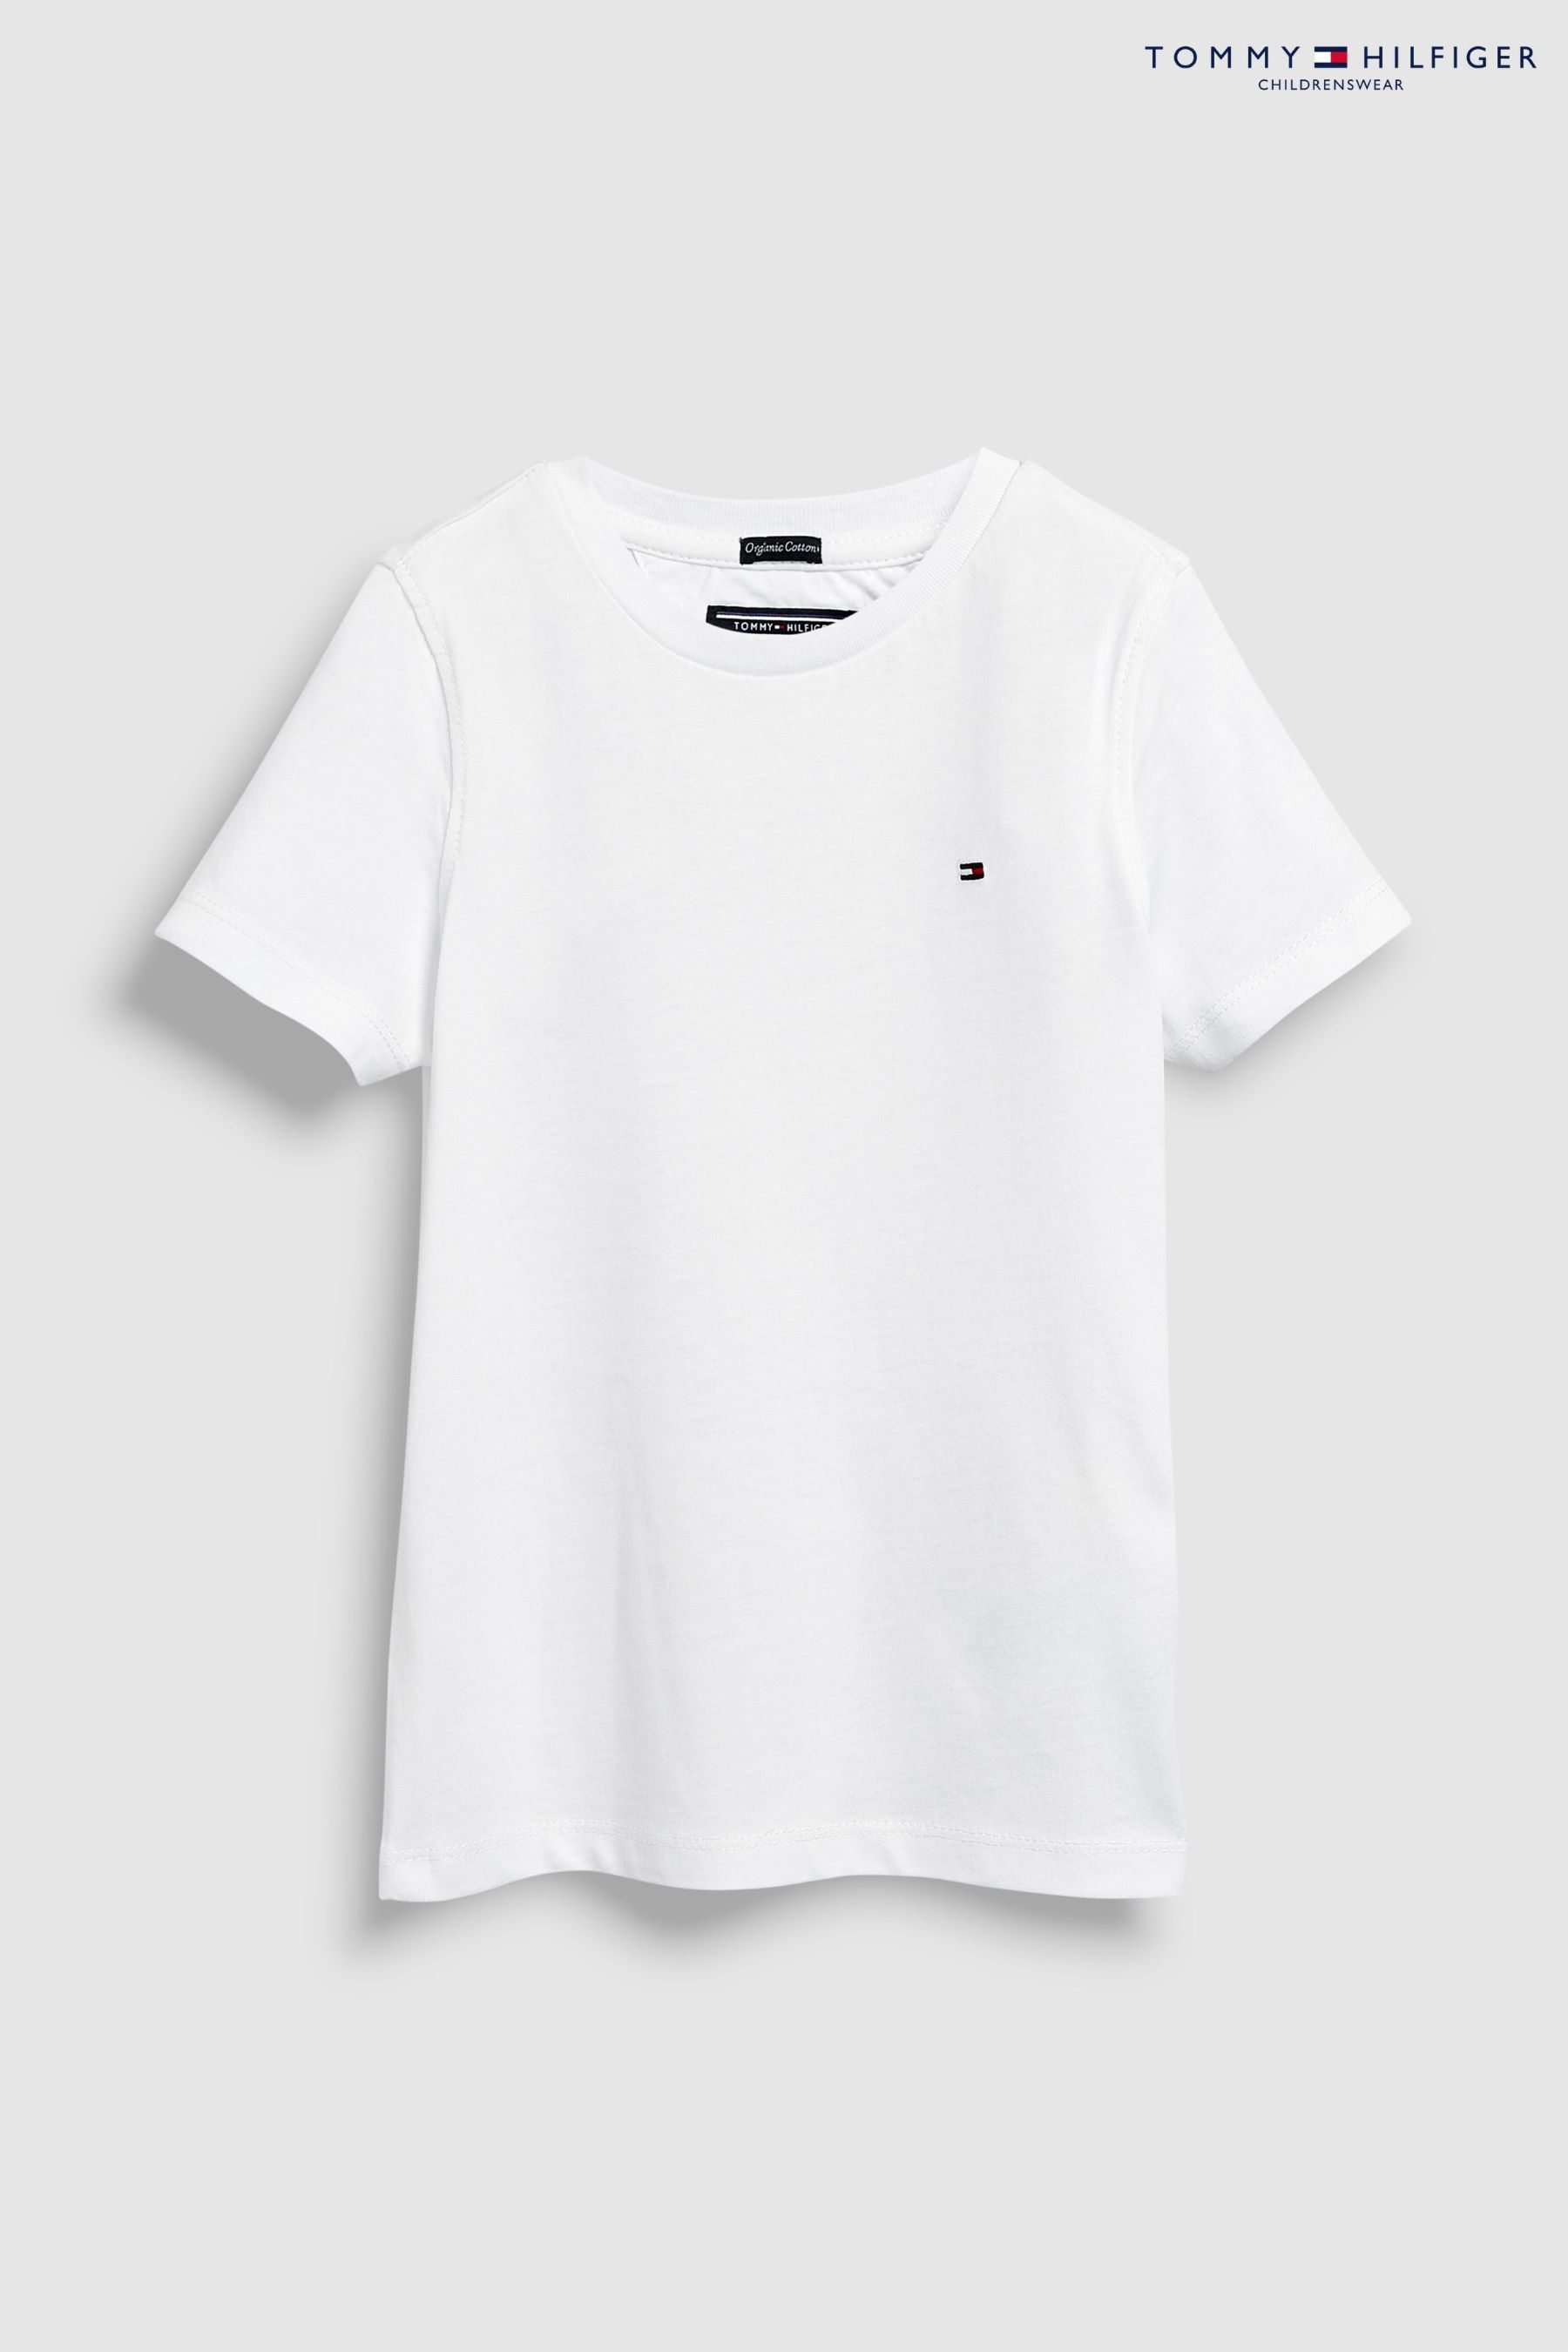 huge discount be1f8 78a92 Boys Tommy Hilfiger White Basic T-Shirt - White | tommy ...